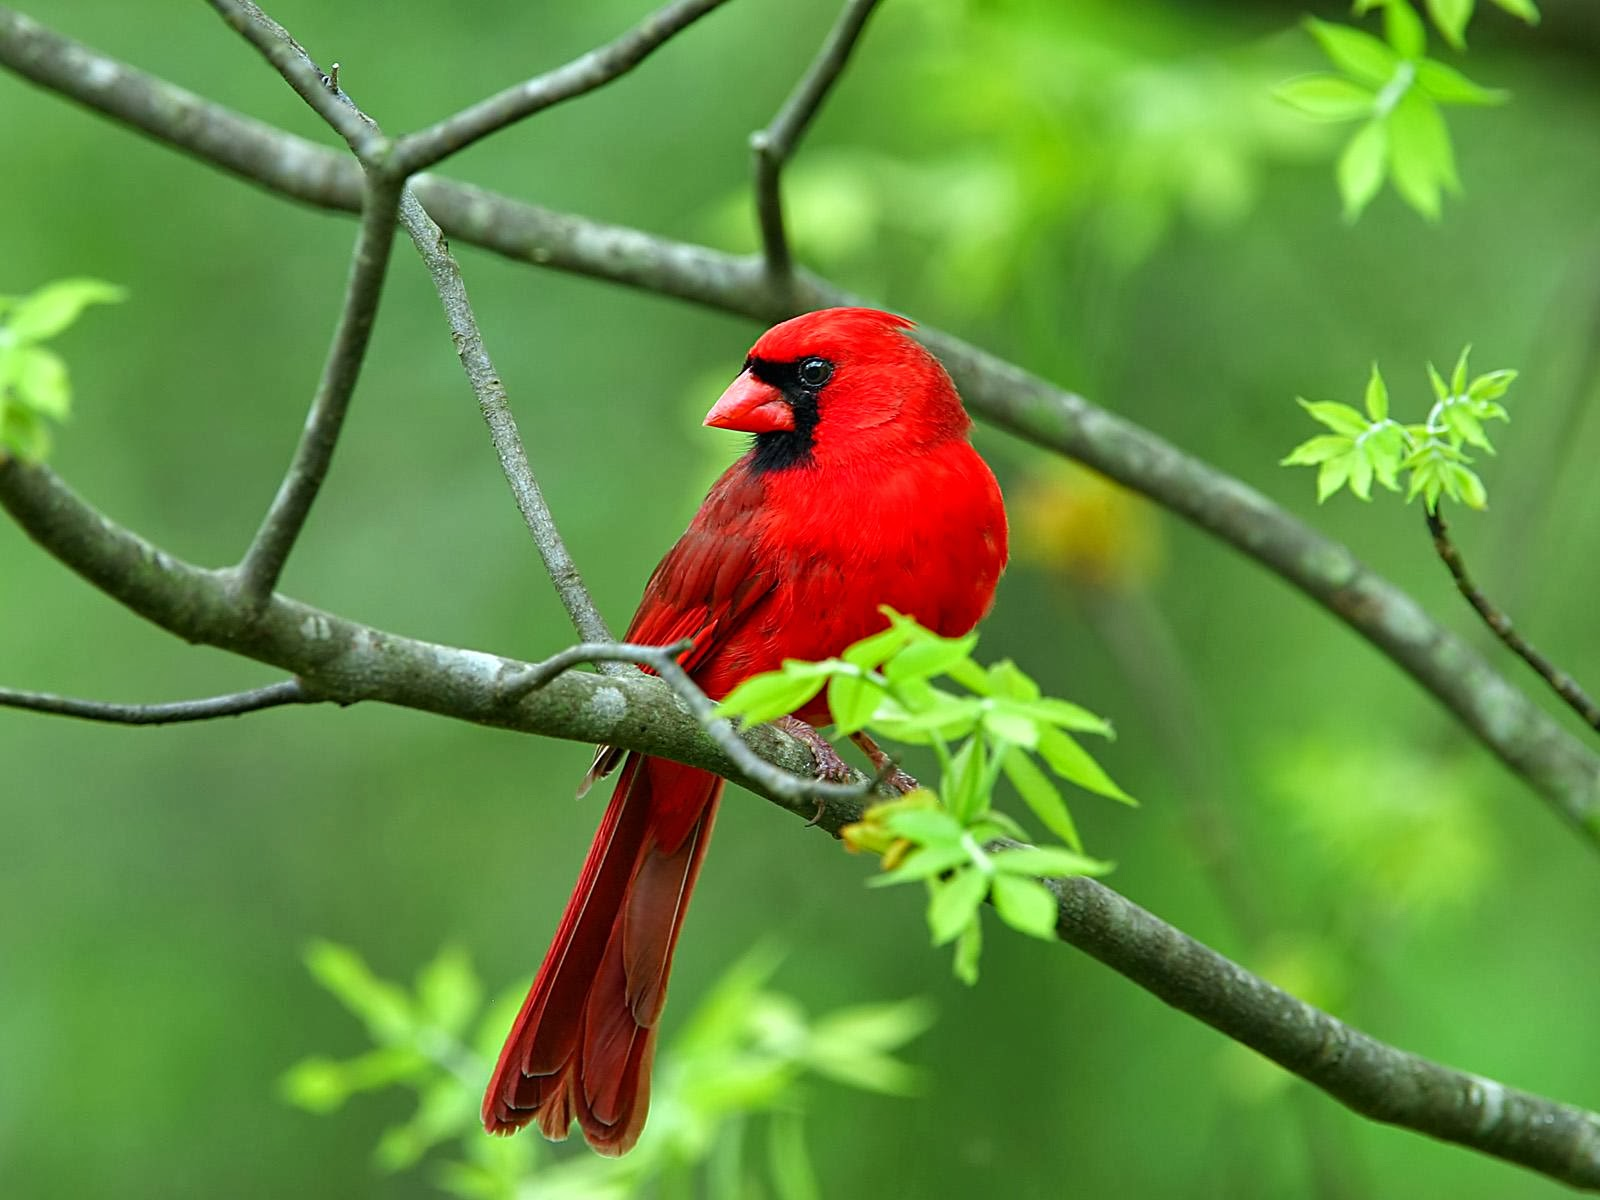 Free Download You The Best Beautiful Birds Wallpapers Beautiful Birds Pictures 1600x1200 For Your Desktop Mobile Tablet Explore 49 Free Birds Wallpaper Download Parrot Wallpapers Free Download Free Bird